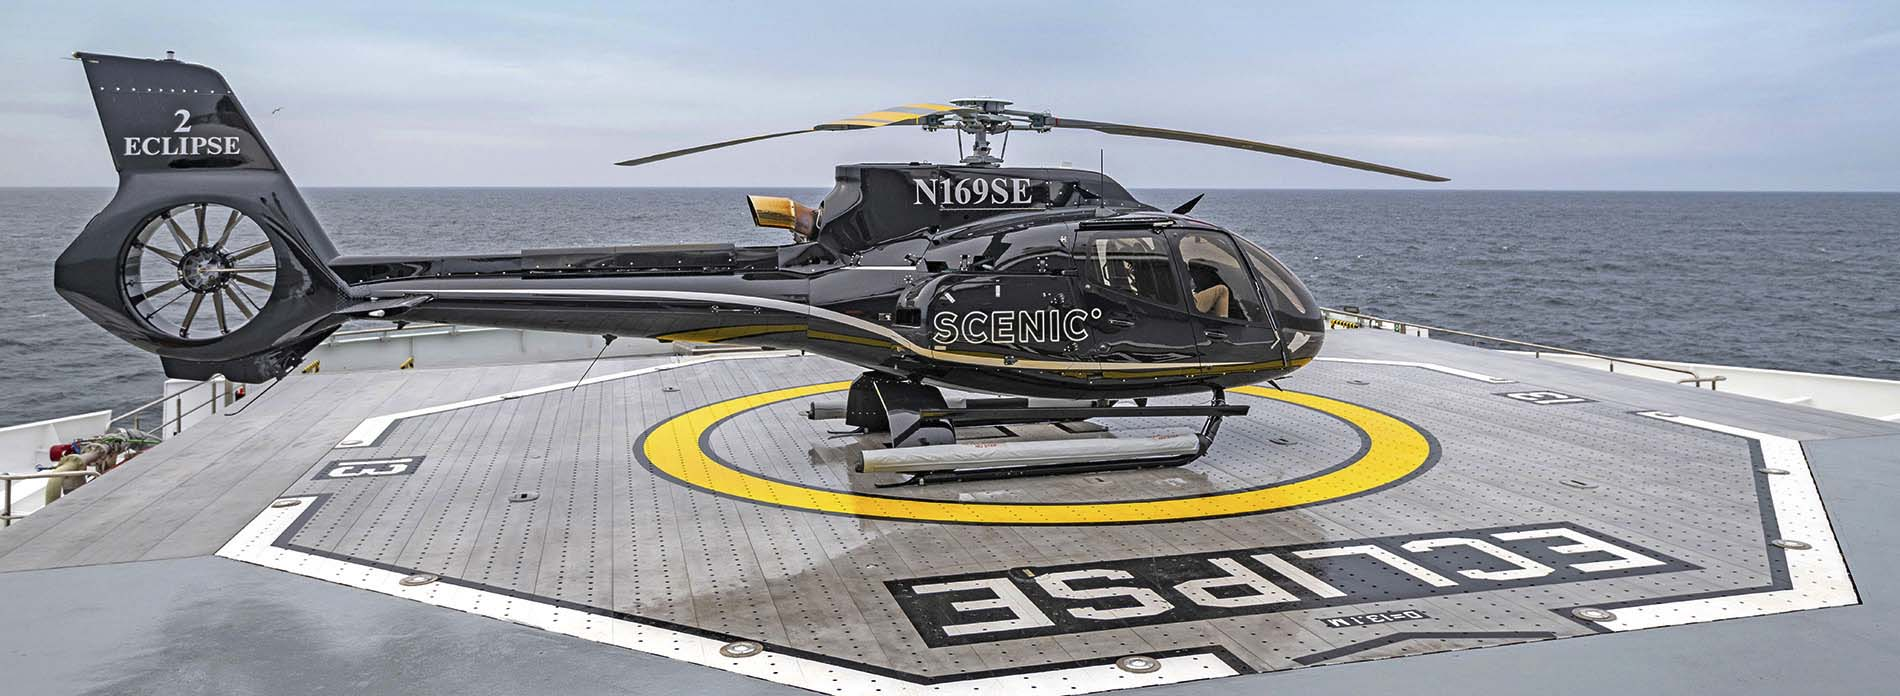 Scenic Eclipse Helicopter Heli Deck